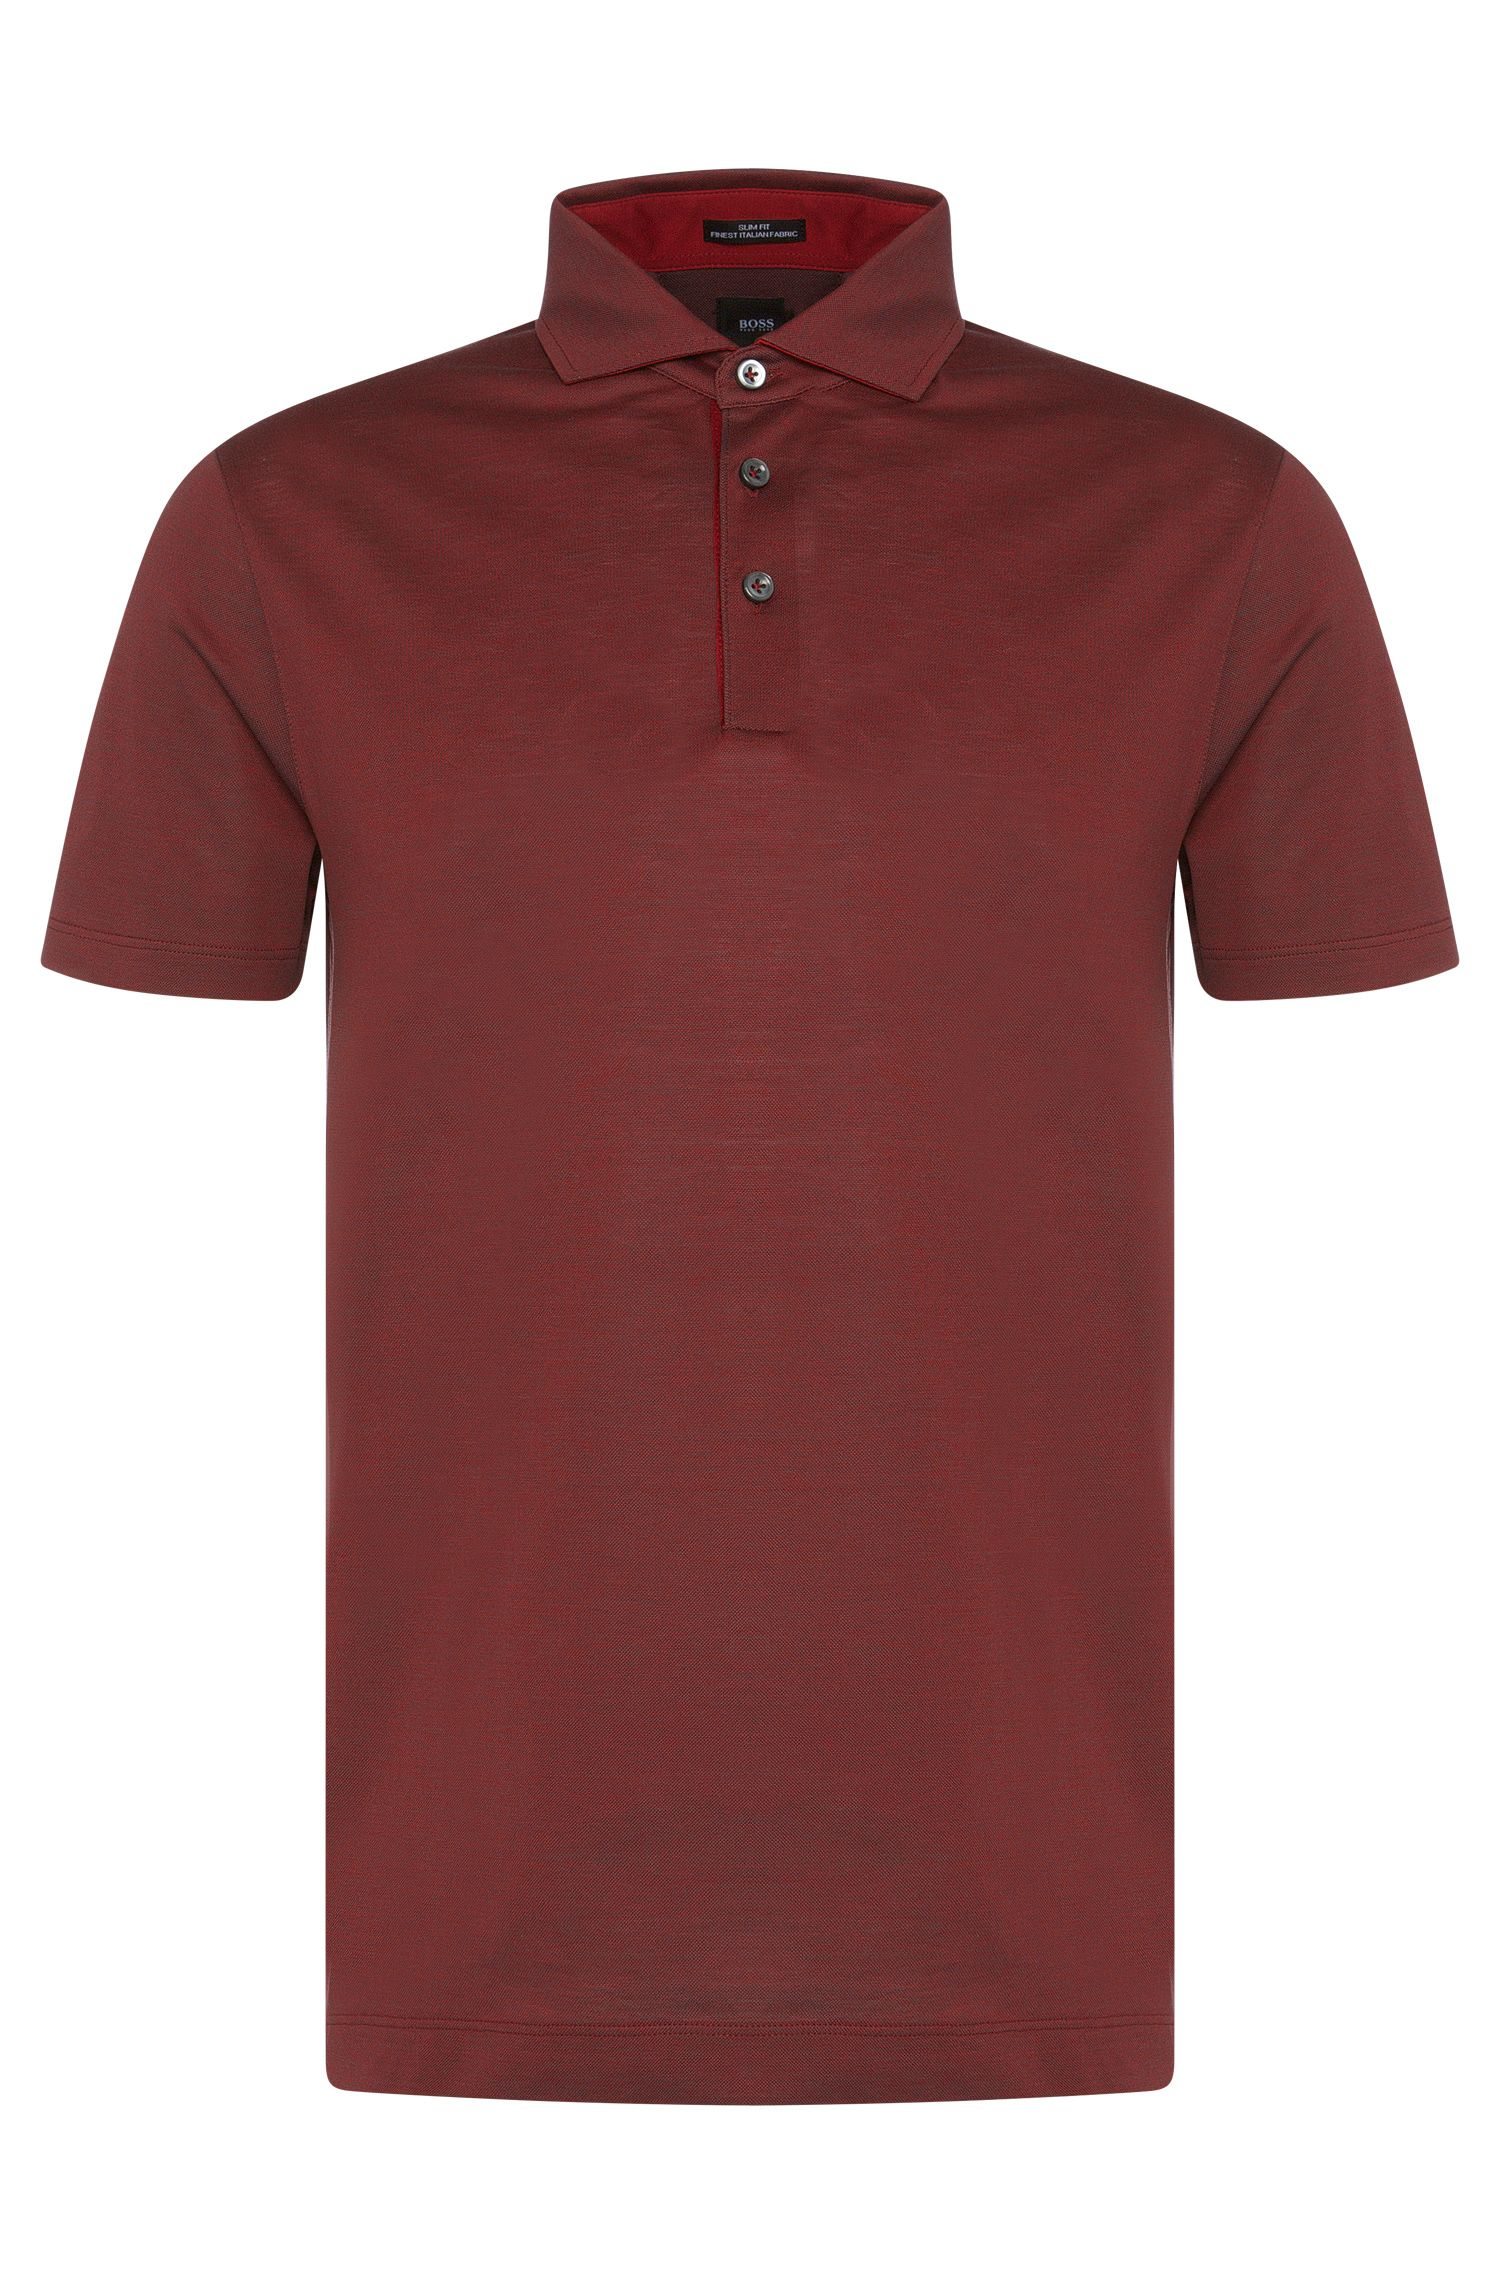 Meliertes Slim-Fit Tailored Poloshirt aus Baumwolle: 'T-Pryde 23'